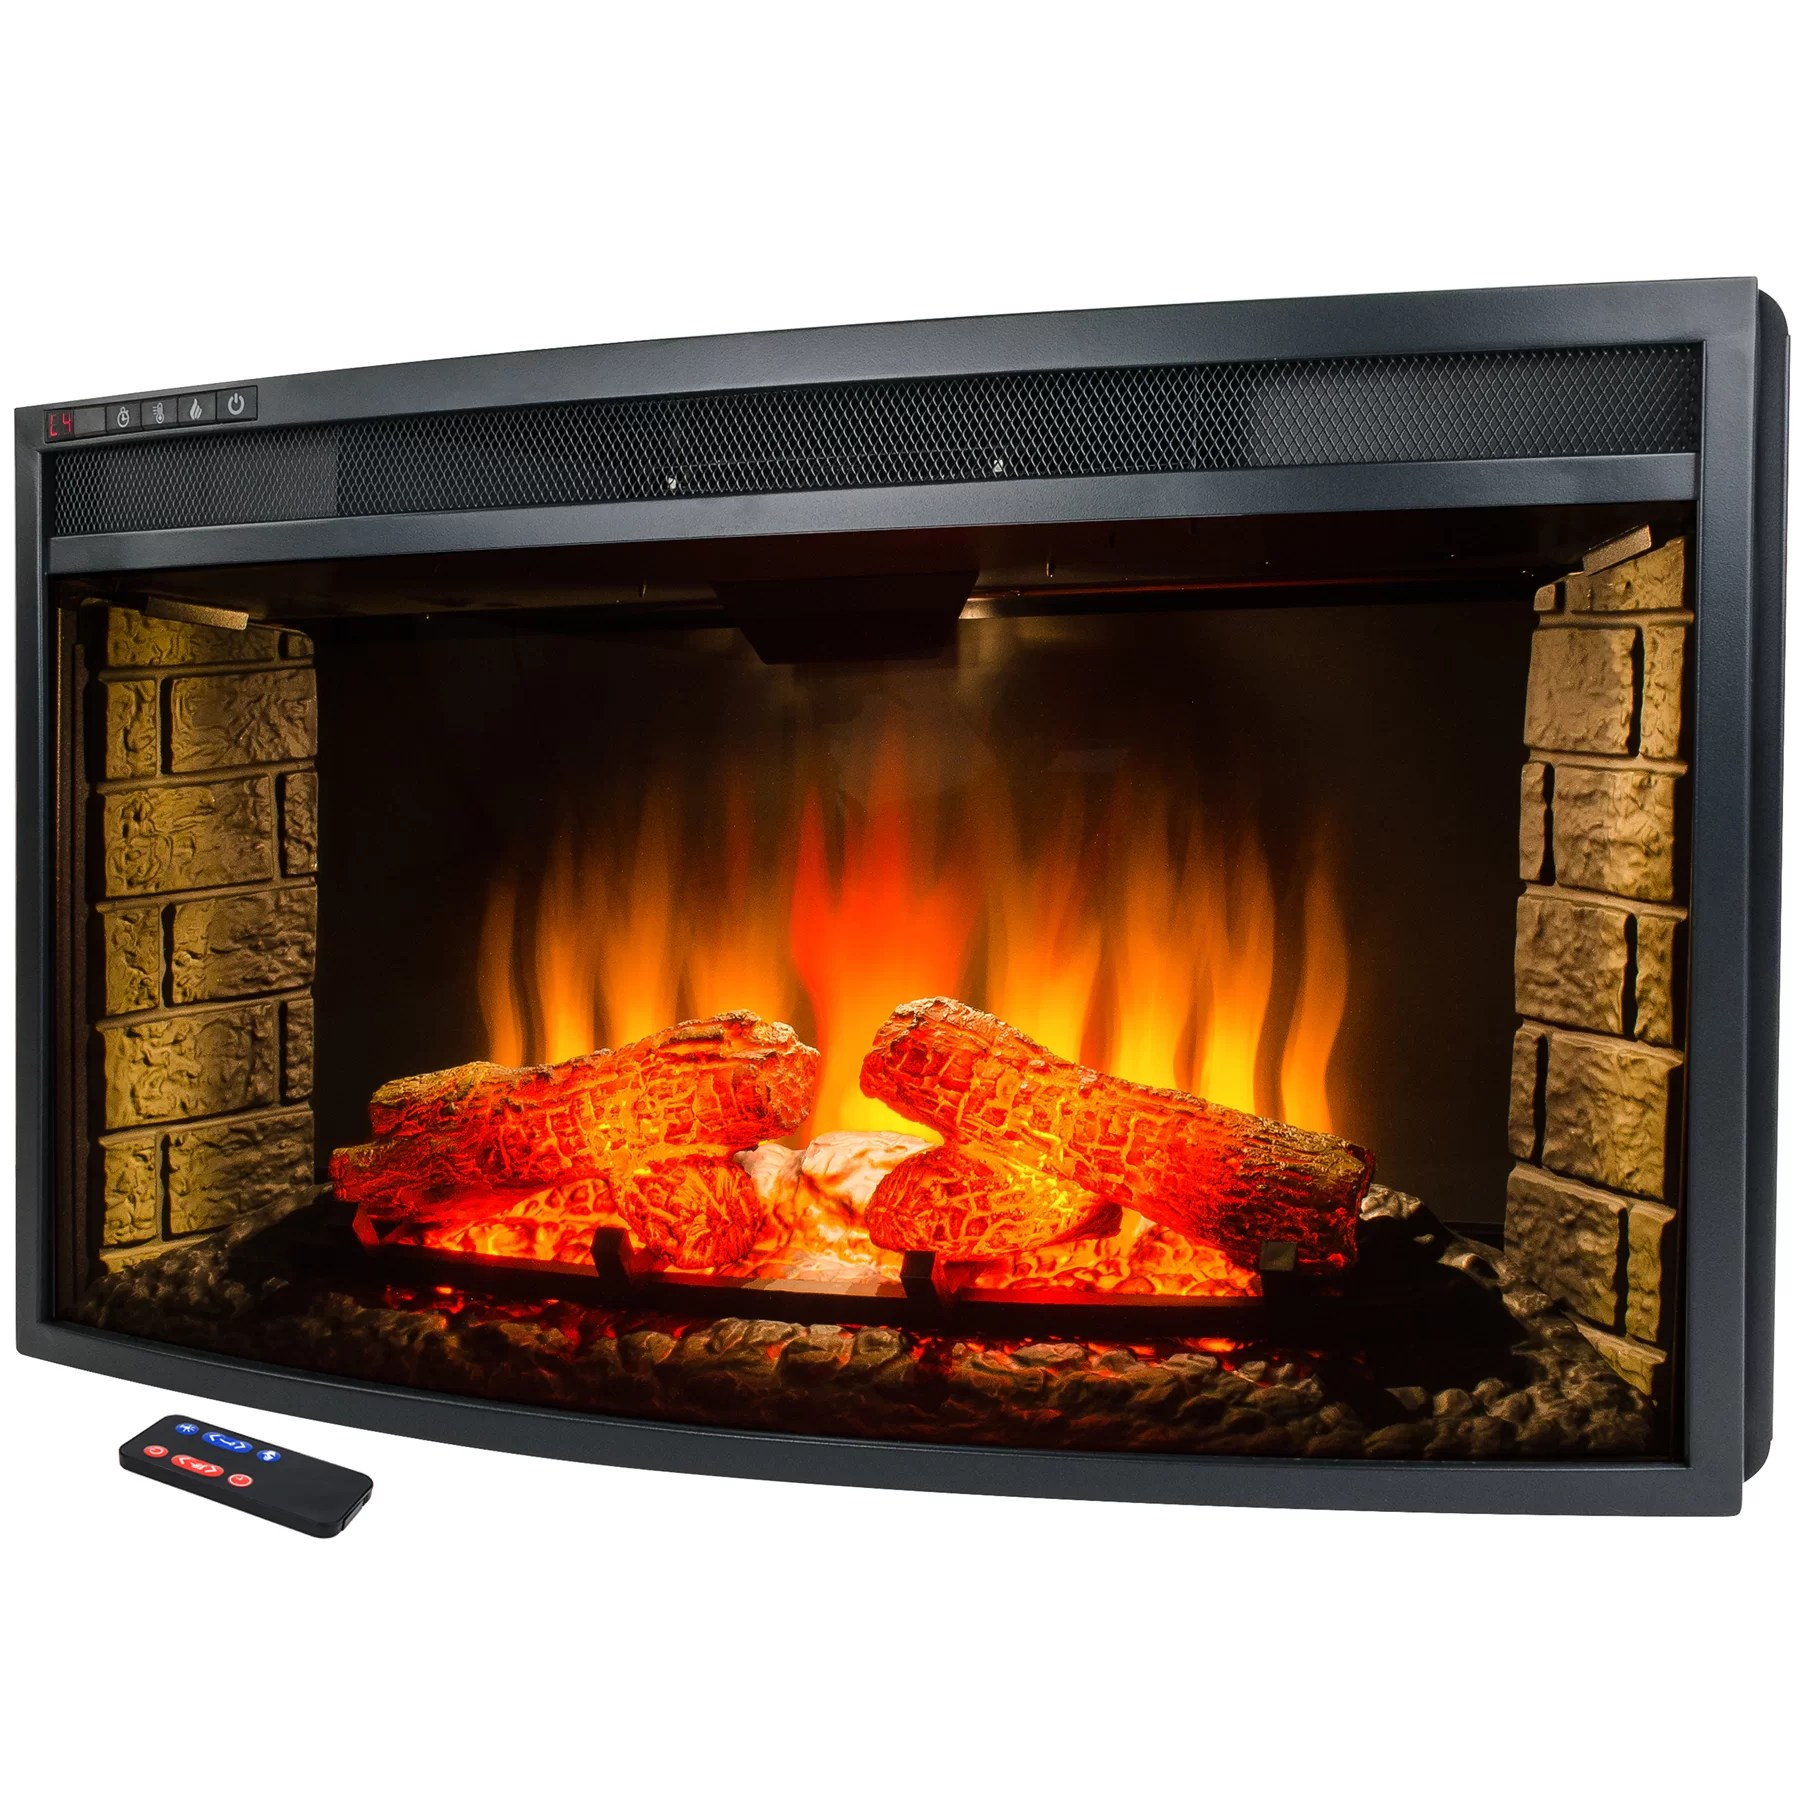 28 In Freestanding Electric Fireplace Insert Heater With For Akdy Freestanding Electric Fireplace Insert & Reviews